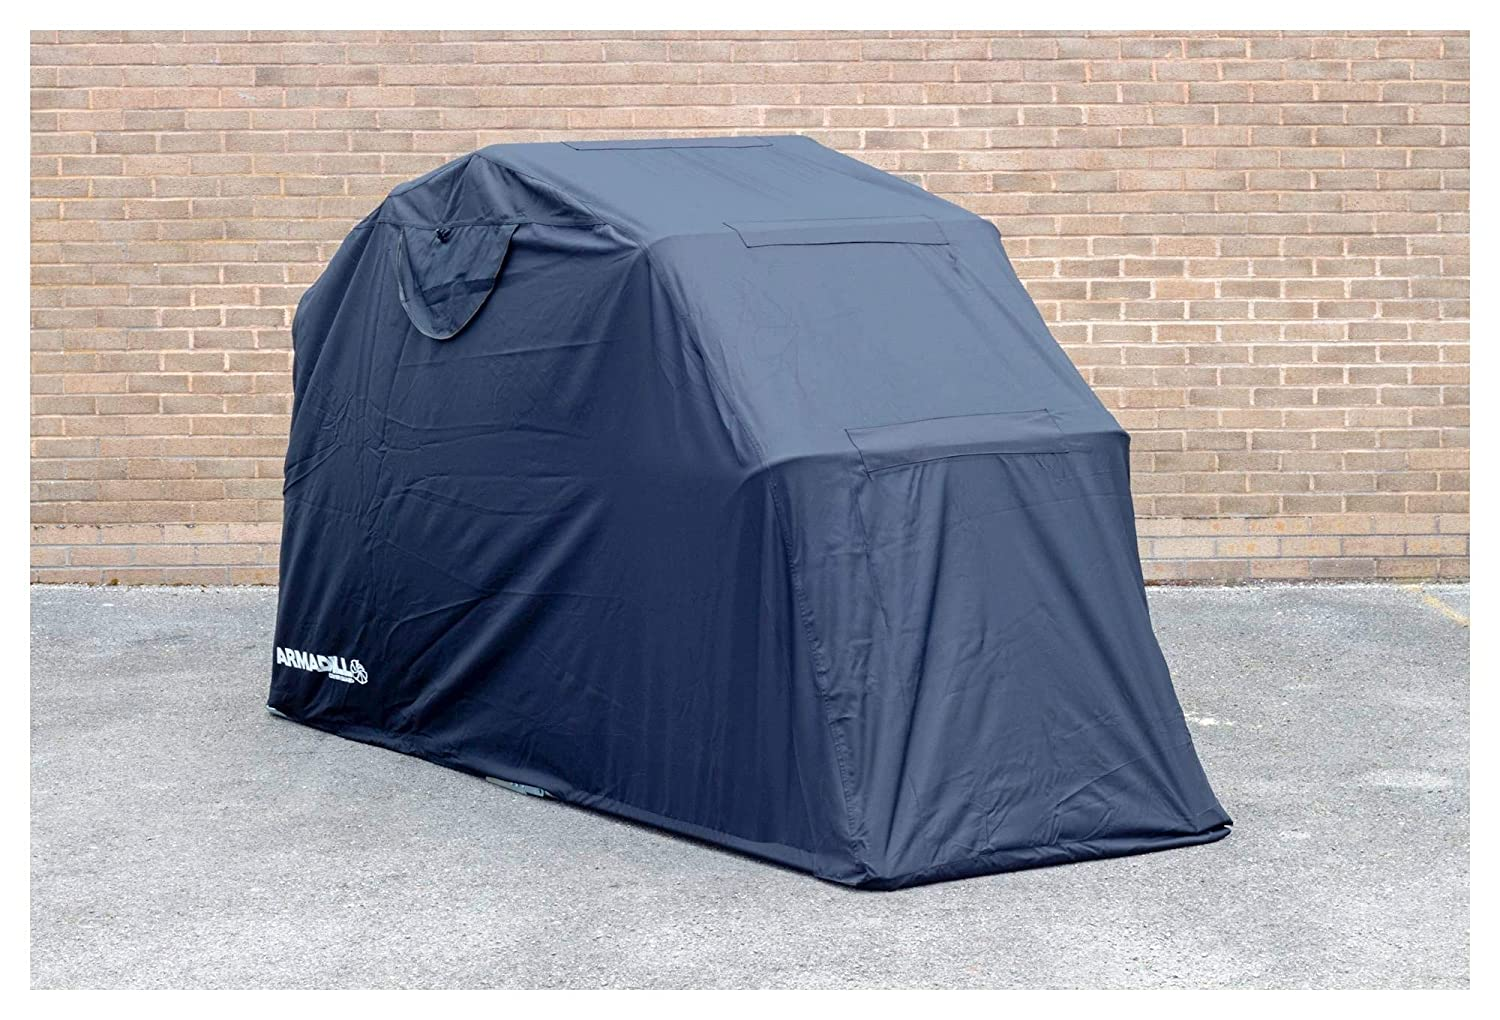 Armadillo Motorcycle Garage Shelter - Motorbike Waterproof Outdoor Cover Small (270cm X 105cm X 155cm)